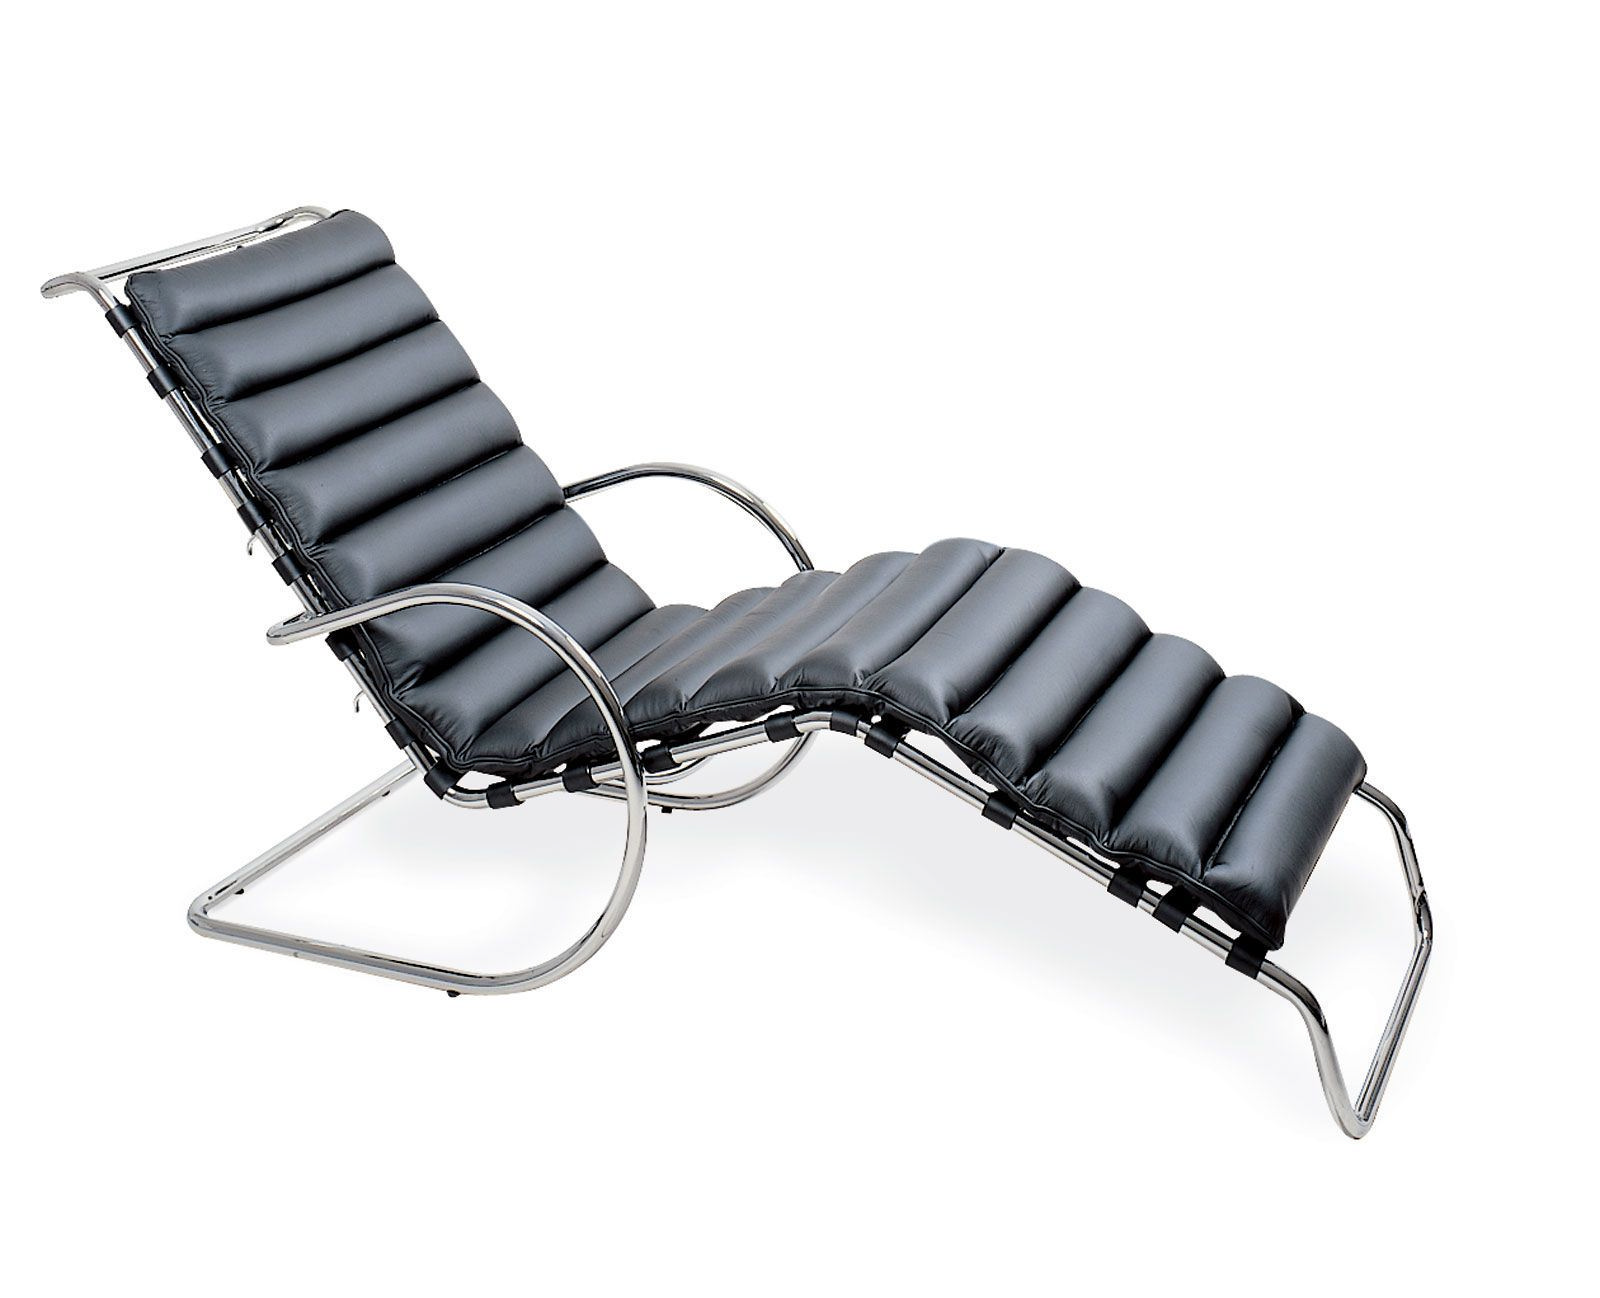 chaise longue ebay co uk with Chaise Mies Van Der Rohe on 310976085366 likewise Leather Chaise Lounge together with Corner Sofa Chaise in addition Grey Corner Sofa Bed additionally 191784984548.